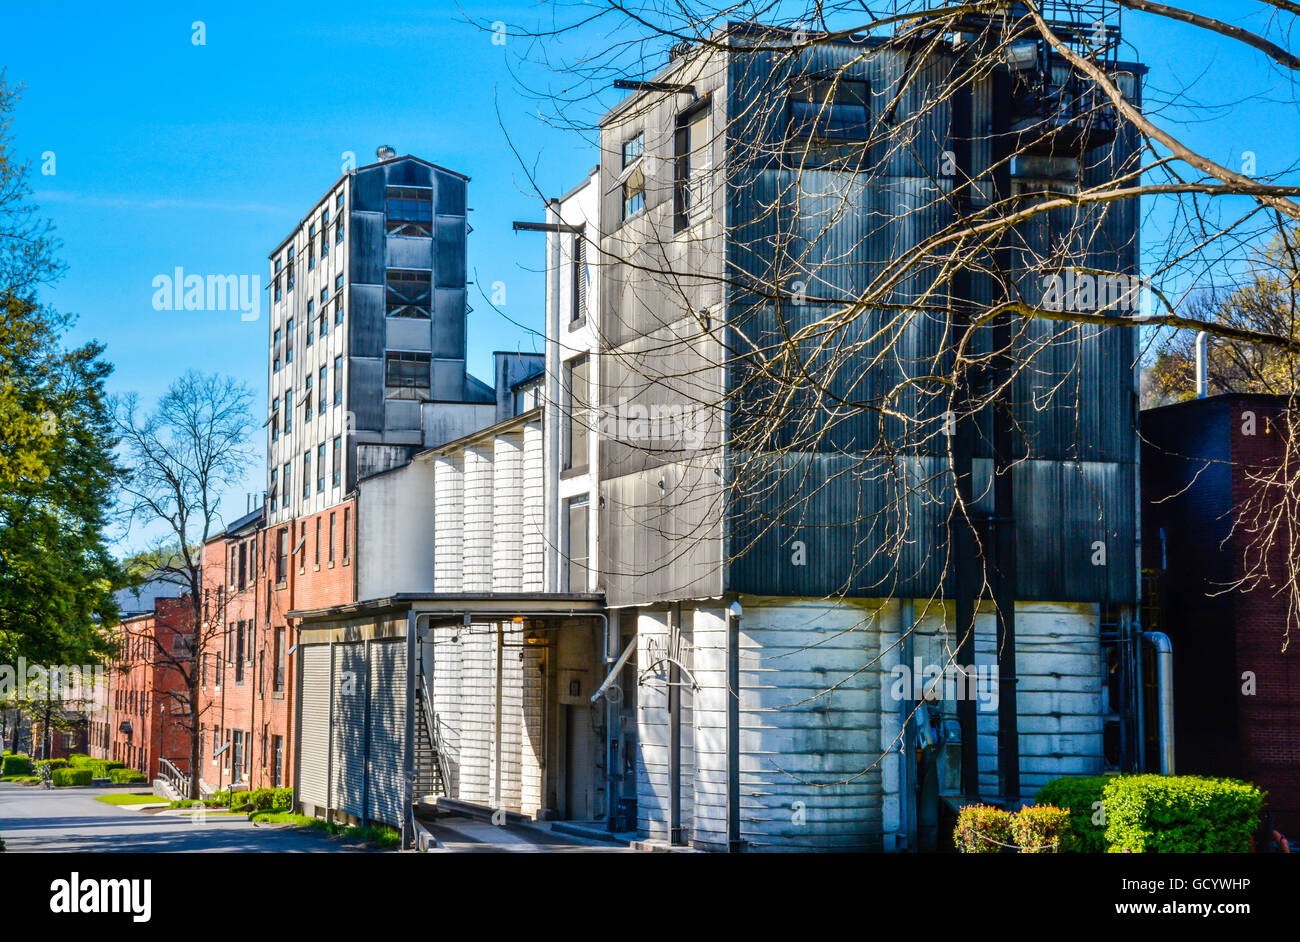 Old blackened metal buildings with old grain mill structures on the grounds of the Jack Daniel's Distillery - Stock Image